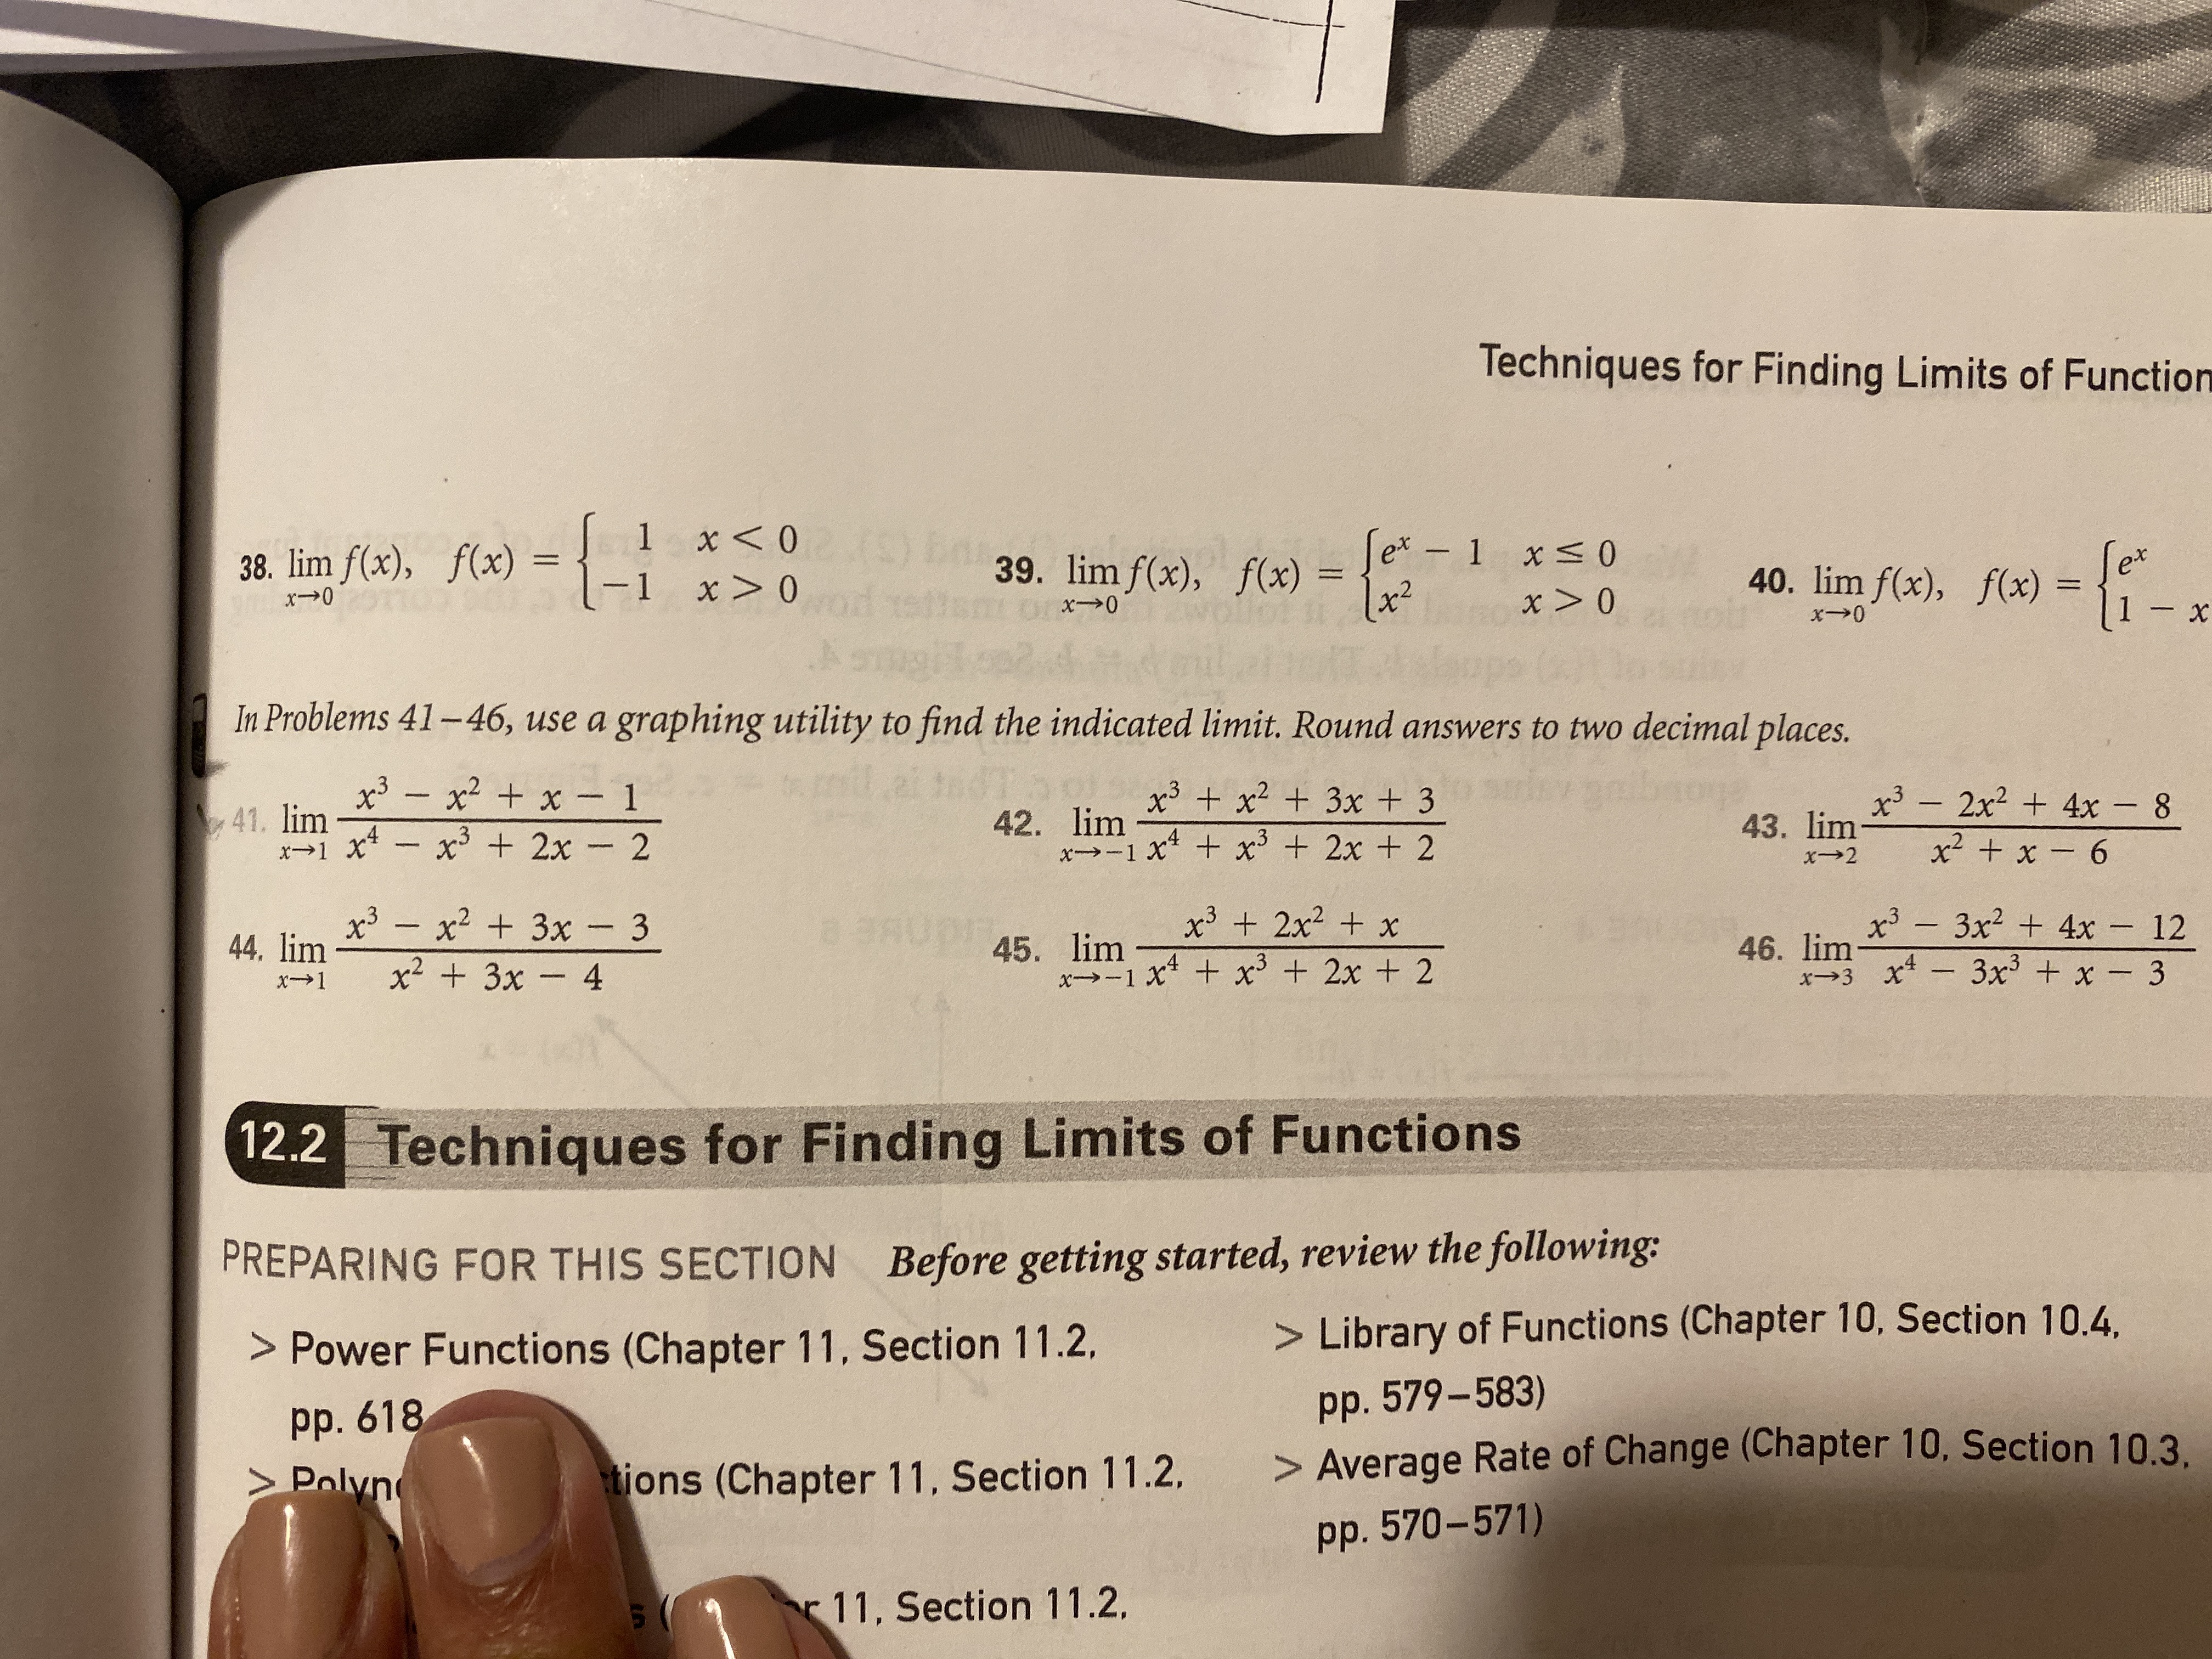 Techniques for Finding Limits of Function 0> x 0X HOA 38. lim f(x), f(x) I 39. lim f(x), f(x) = 40. lim f(x), f(x) = 0 X I - 0-x I 0-x 0X 0-x x - In Problems 41-46, use a graphing utility to find the indicated limit. Round answers to two decimal places. x3 x2x 1 x3 x2 3x + 3 xt x3 2x + 2 41. lim x3-2x2 4x - 8 42. lim 43. lim 9 x + x x3 3x2 4x - 12 xt 3x3 x- 3 7 - X7 + x xl- T-X 7-x x3 x2 3x-3 BE 2 45. lim 44, lim x2 3x- 4 46. lim 12.2 Techniques for Finding Limits of Functions PREPARING FOR THIS SECTION Before getting started, review the following: > Power Functions (Chapter 11, Section 11.2. > Library of Functions (Chapter 10, Section 10.4 pp. 618 > Polyn pp. 579-583) > Average Rate of Change (Chapter 10, Section 10.3. tions (Chapter 11, Section 11.2,. pp. 570-571) r11, Section 11.2